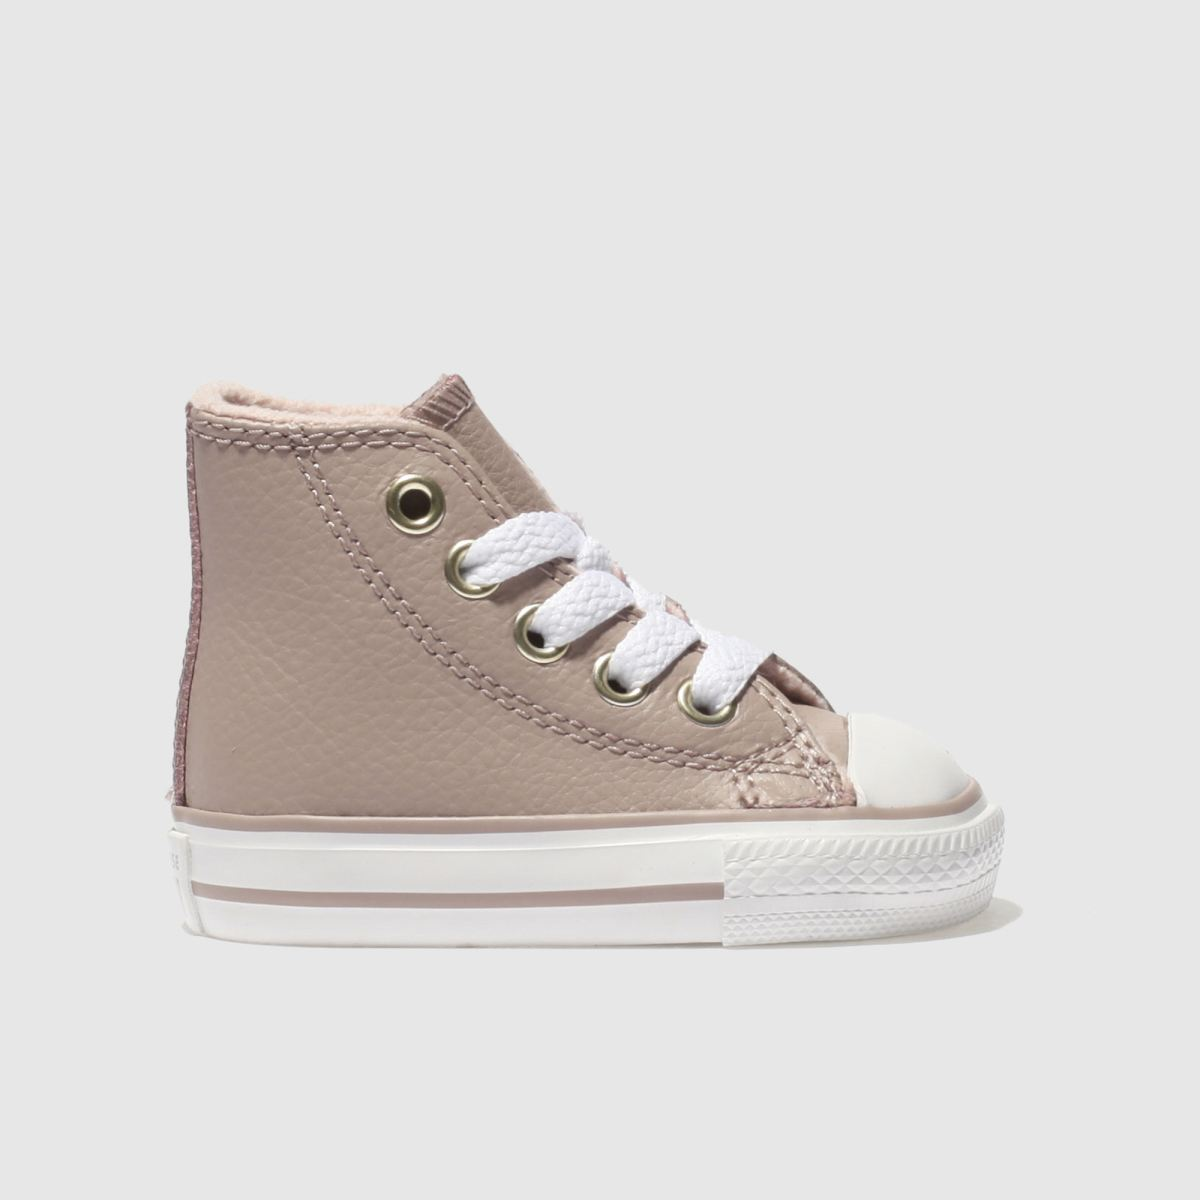 Converse Pale Pink All Star Hi Leather Trainers Toddler